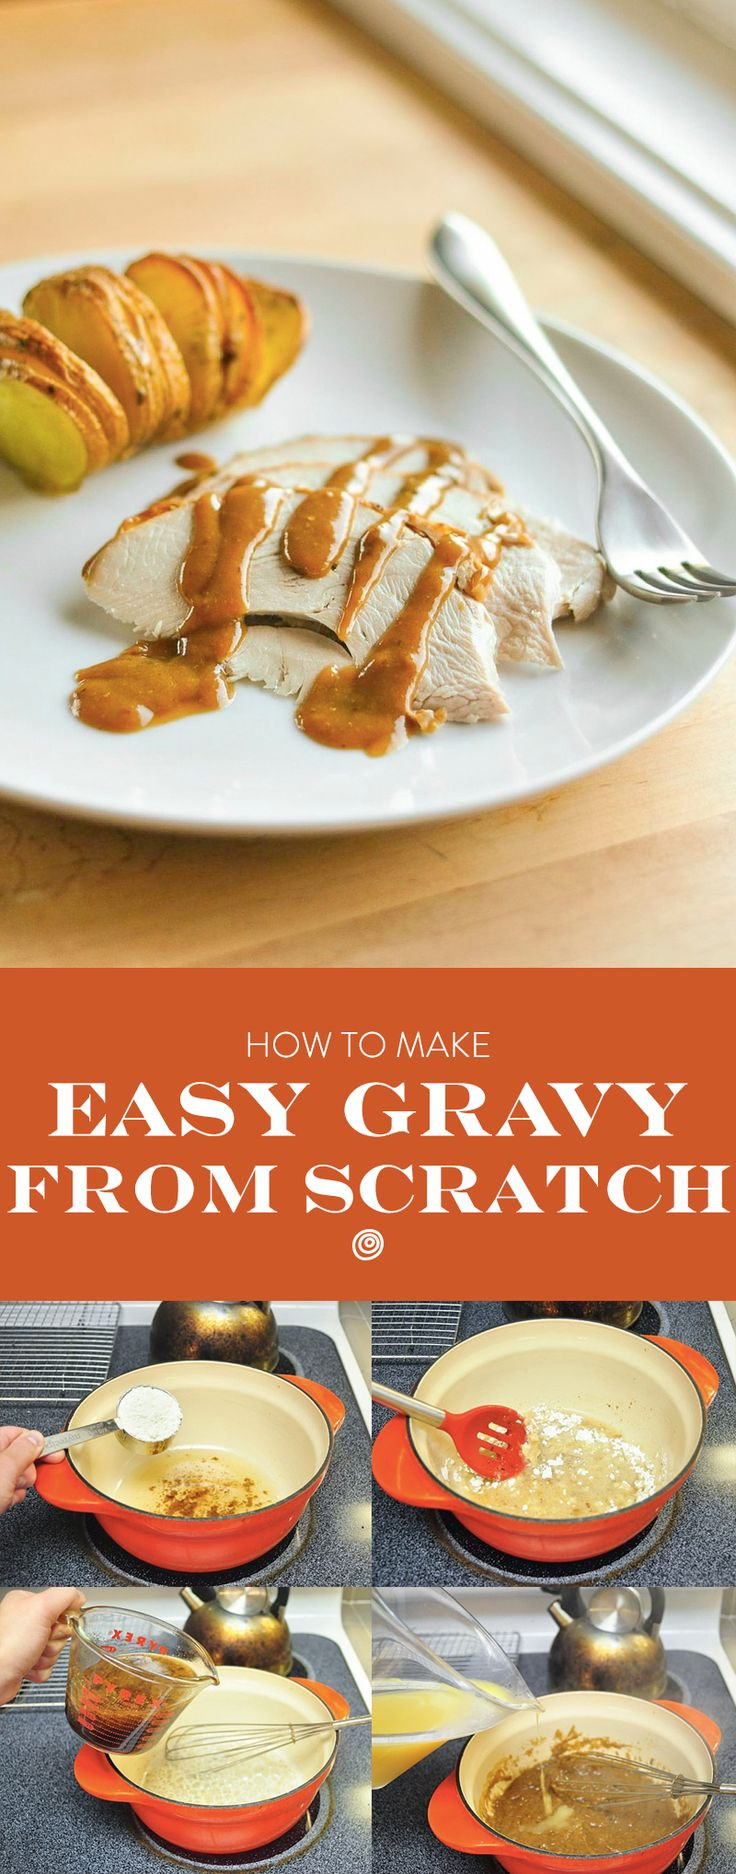 How To Make Turkey Gravy From Scratch  How To Make an Easy Turkey Gravy Recipe